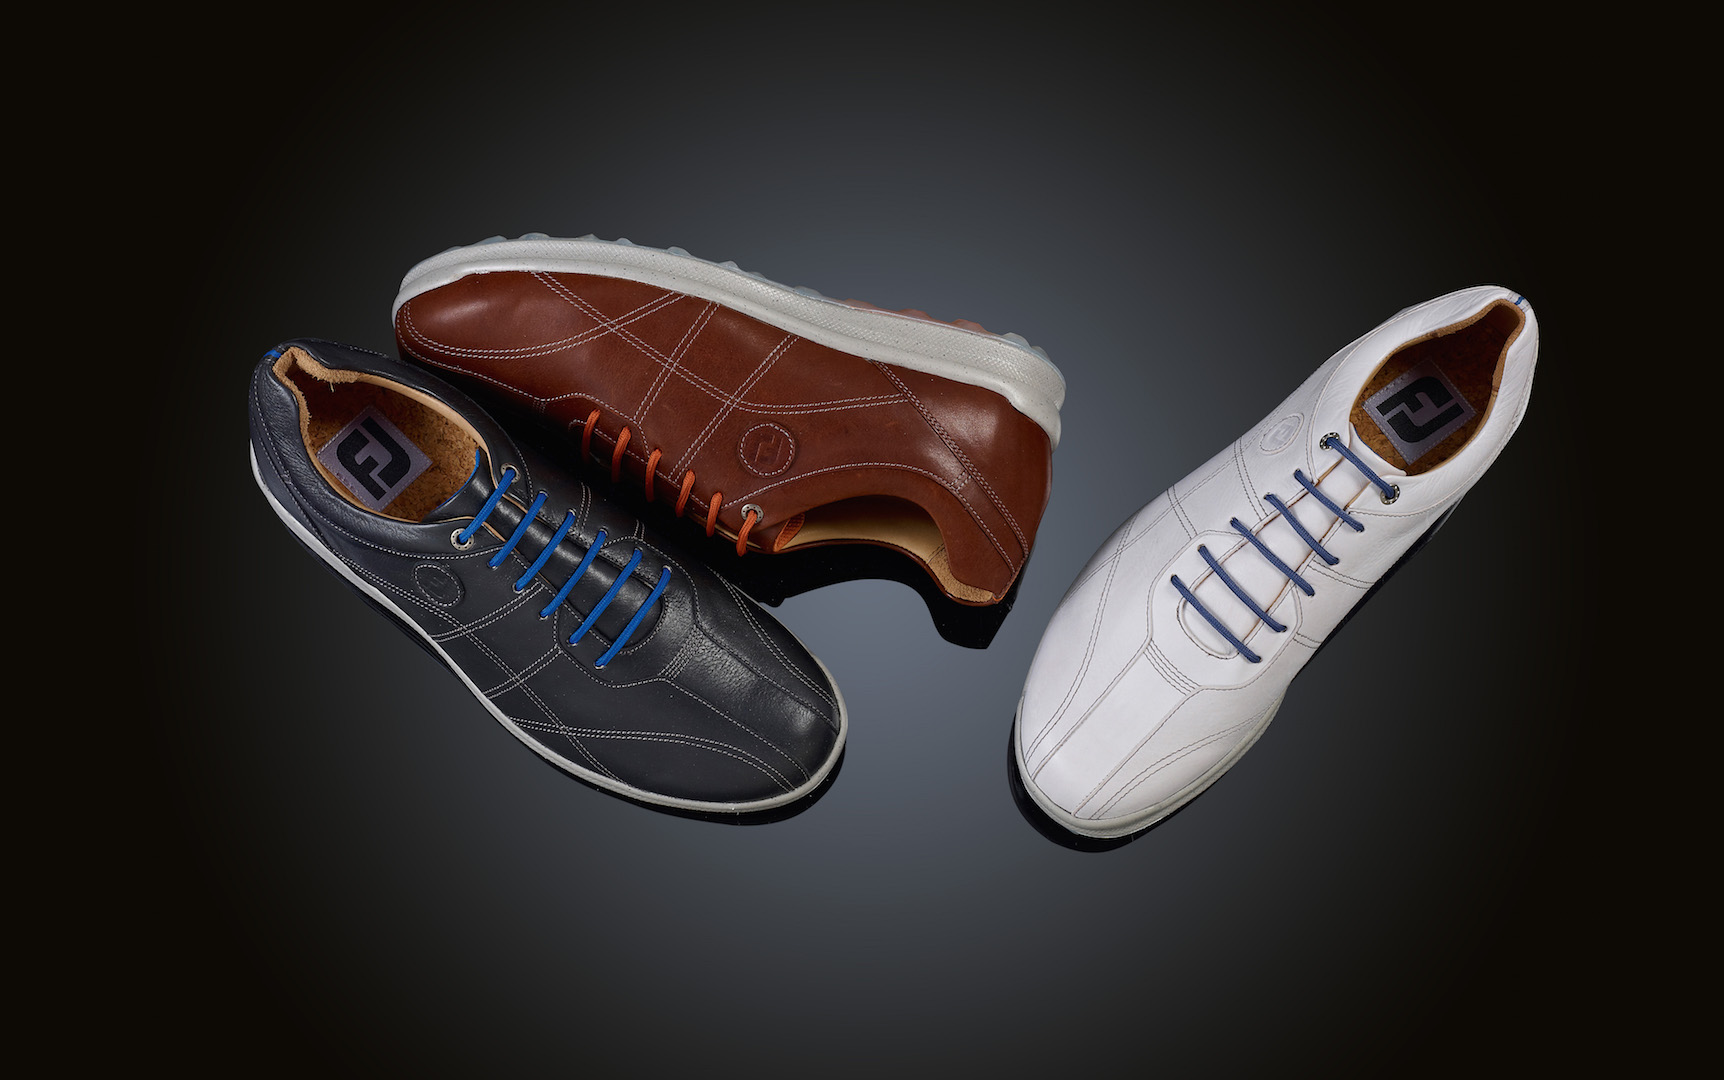 FootJoy VersaLuxe Golf Shoes